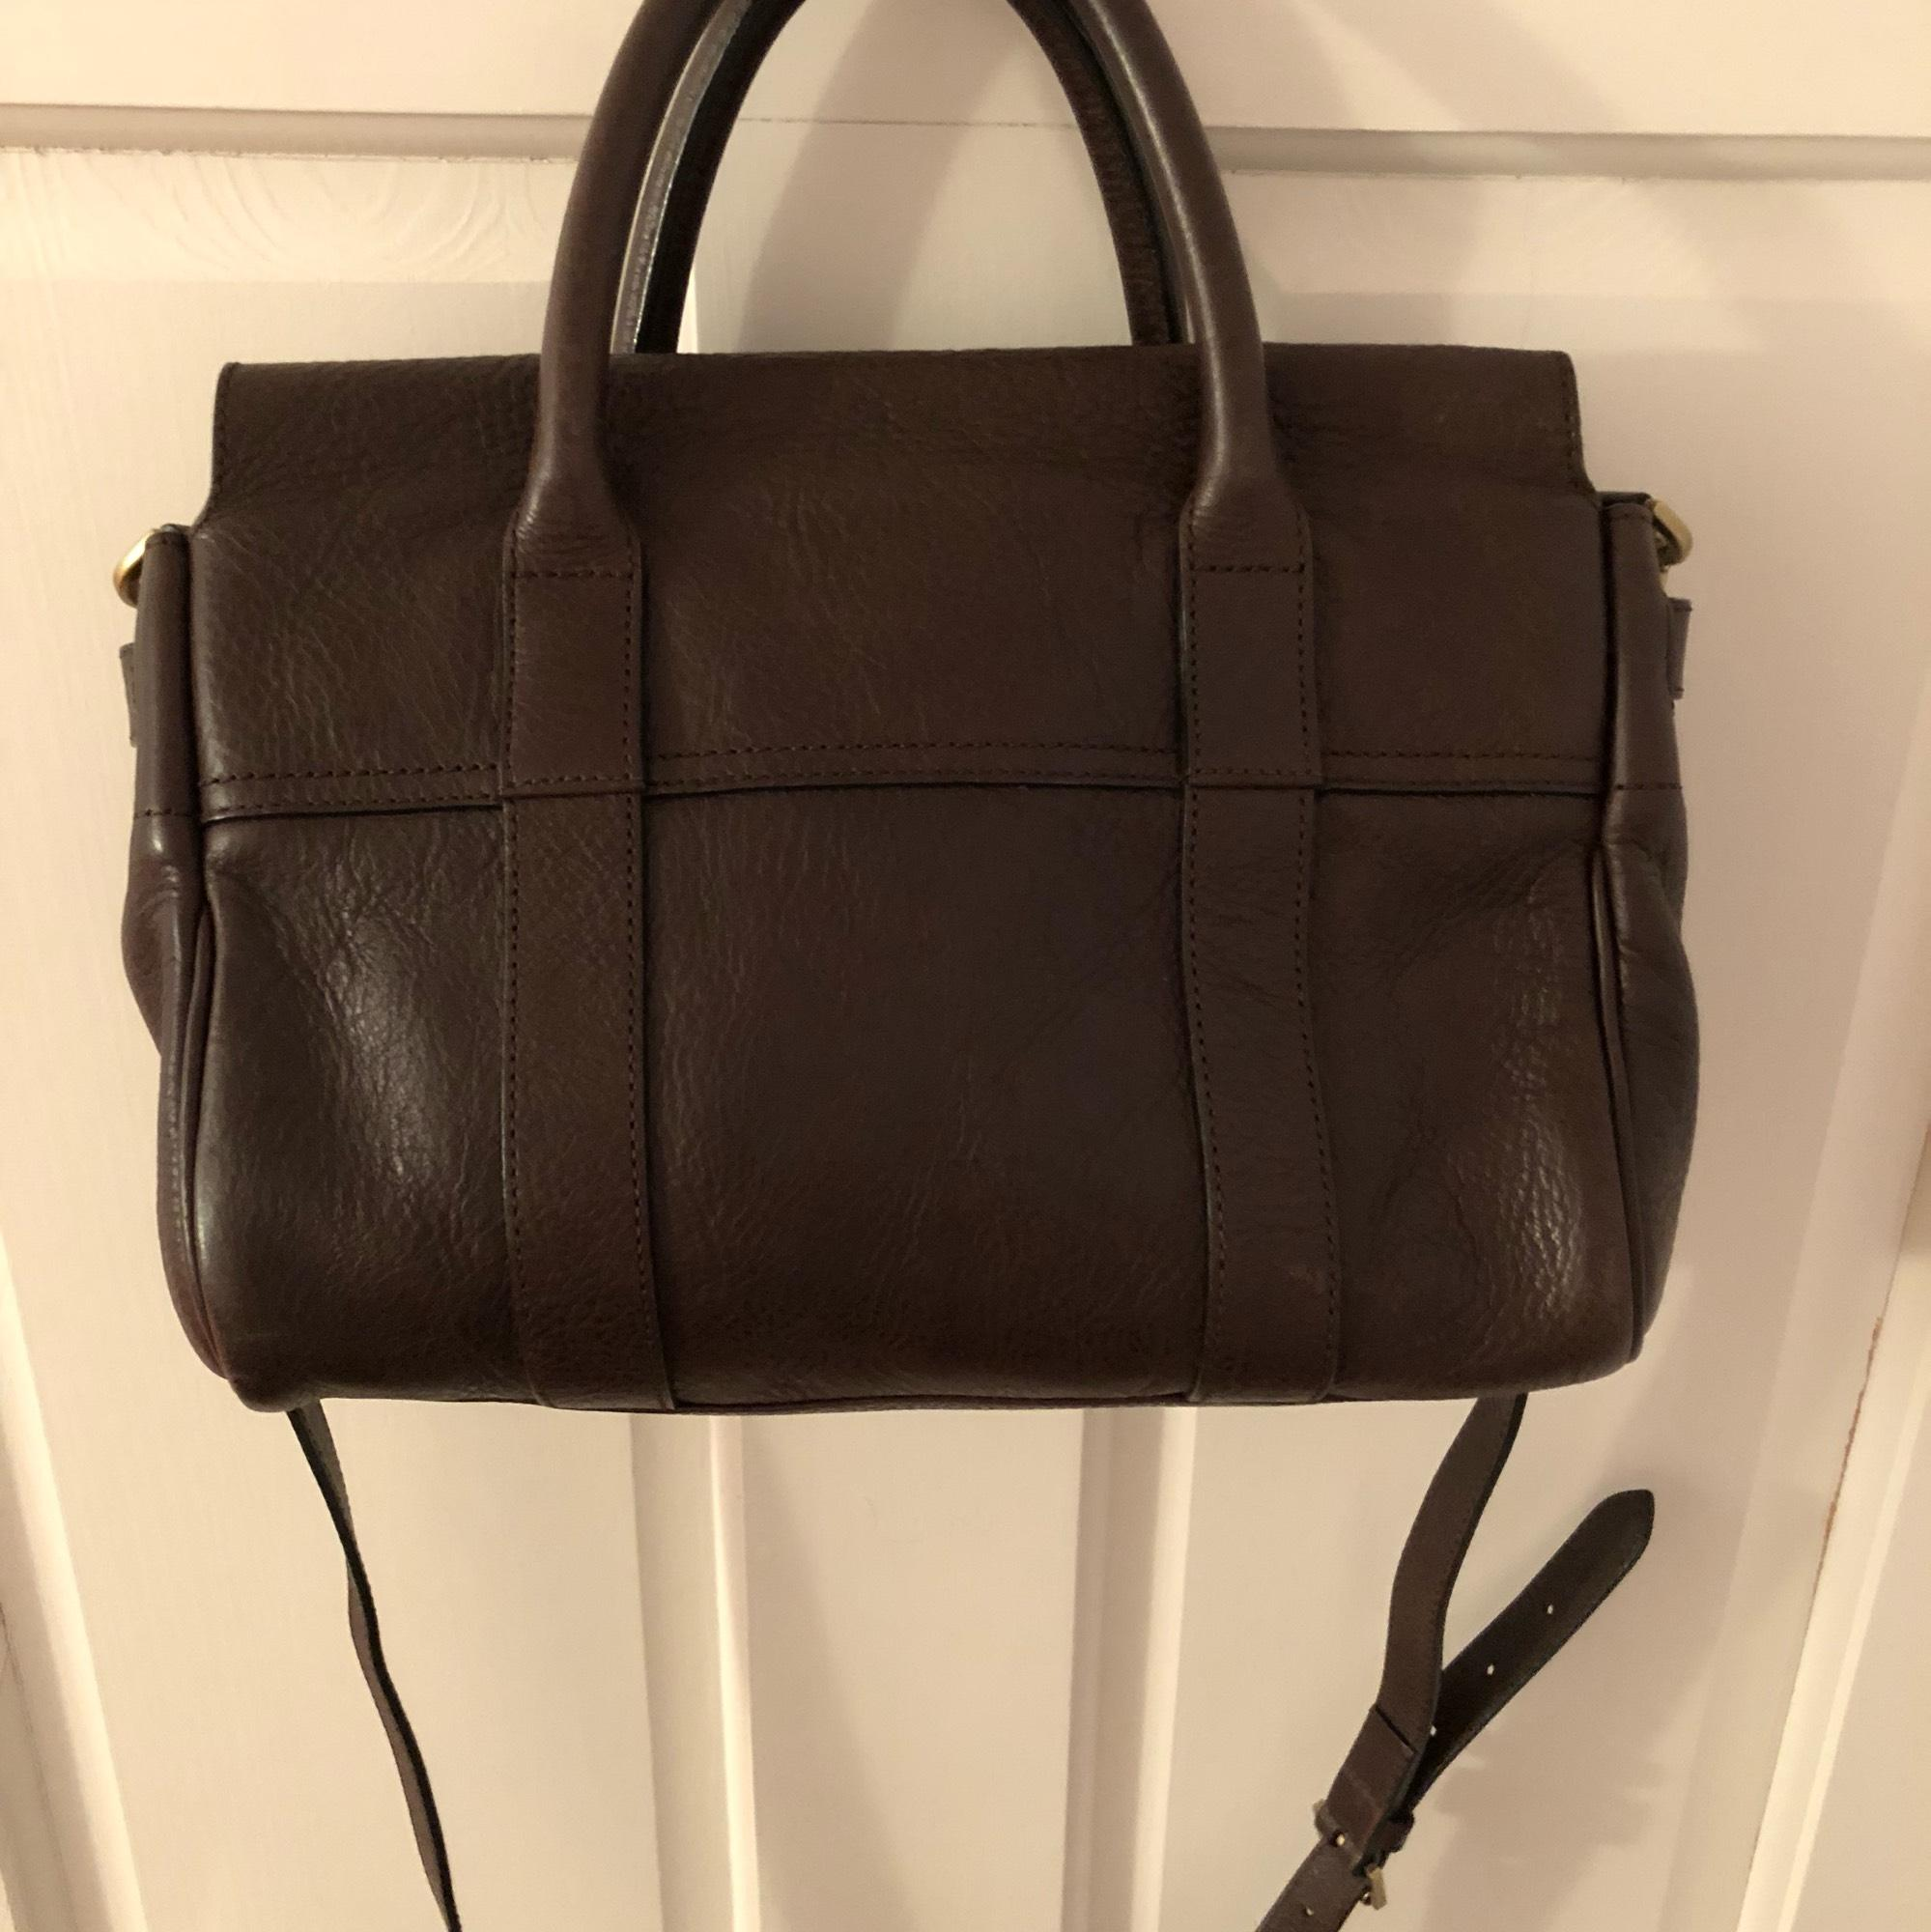 eb8ac6f231 ... good mulberry small bayswater chocolate natural leather satchel tradesy  b6281 3de32 ...